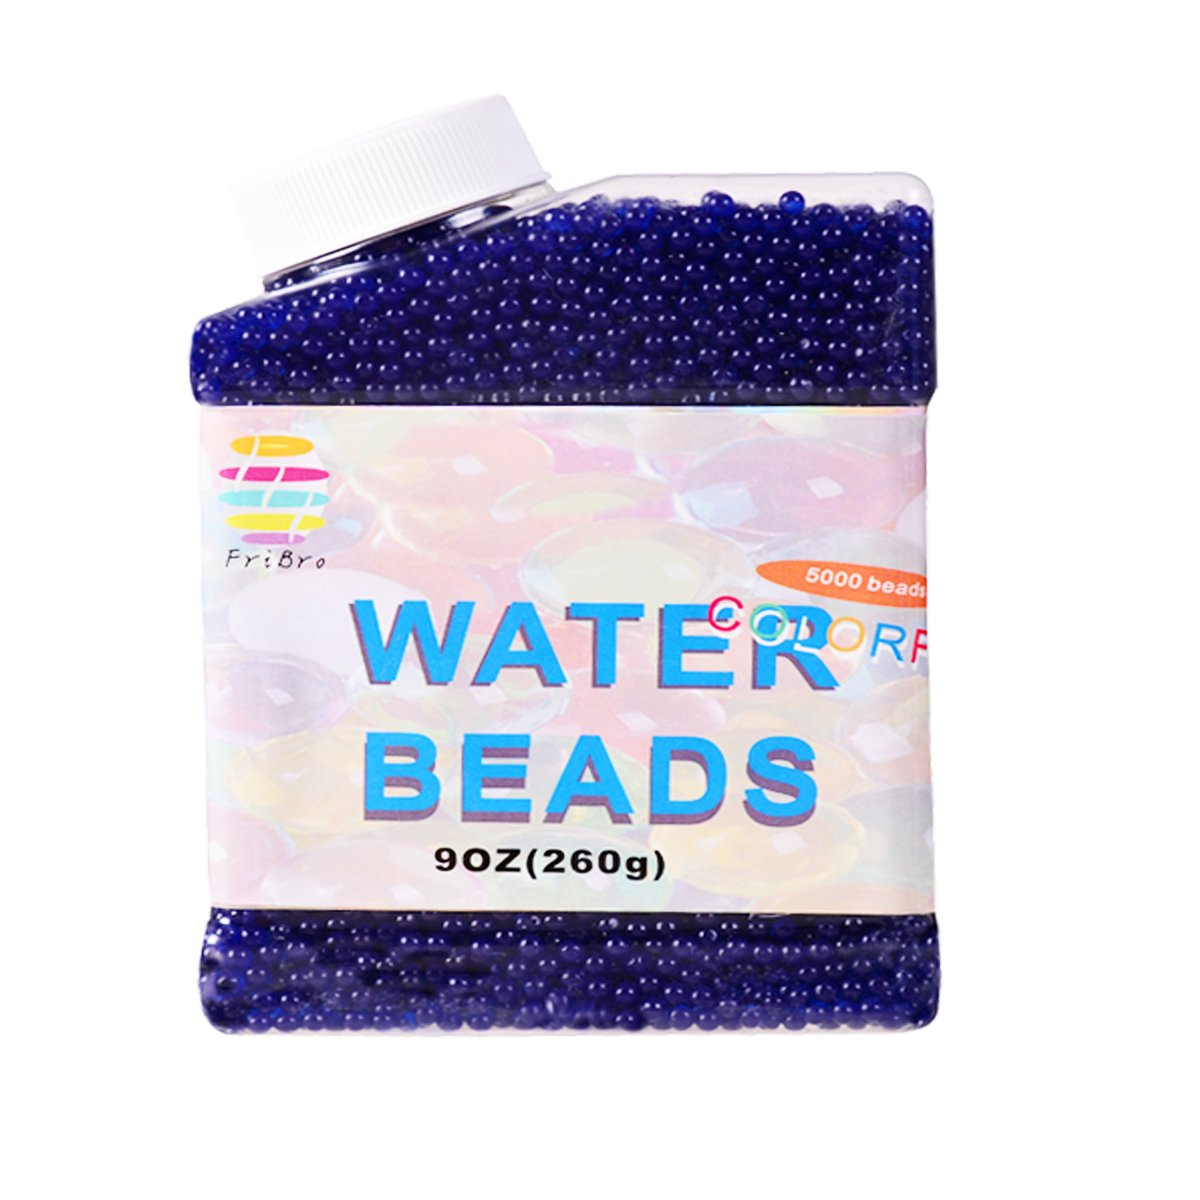 Fribro Water Beads,5000 Pcs,Water Gel Beads Pearls for Vase Filler, Swimming Pool, Home Decoration, Plants, Toys. (Blue)